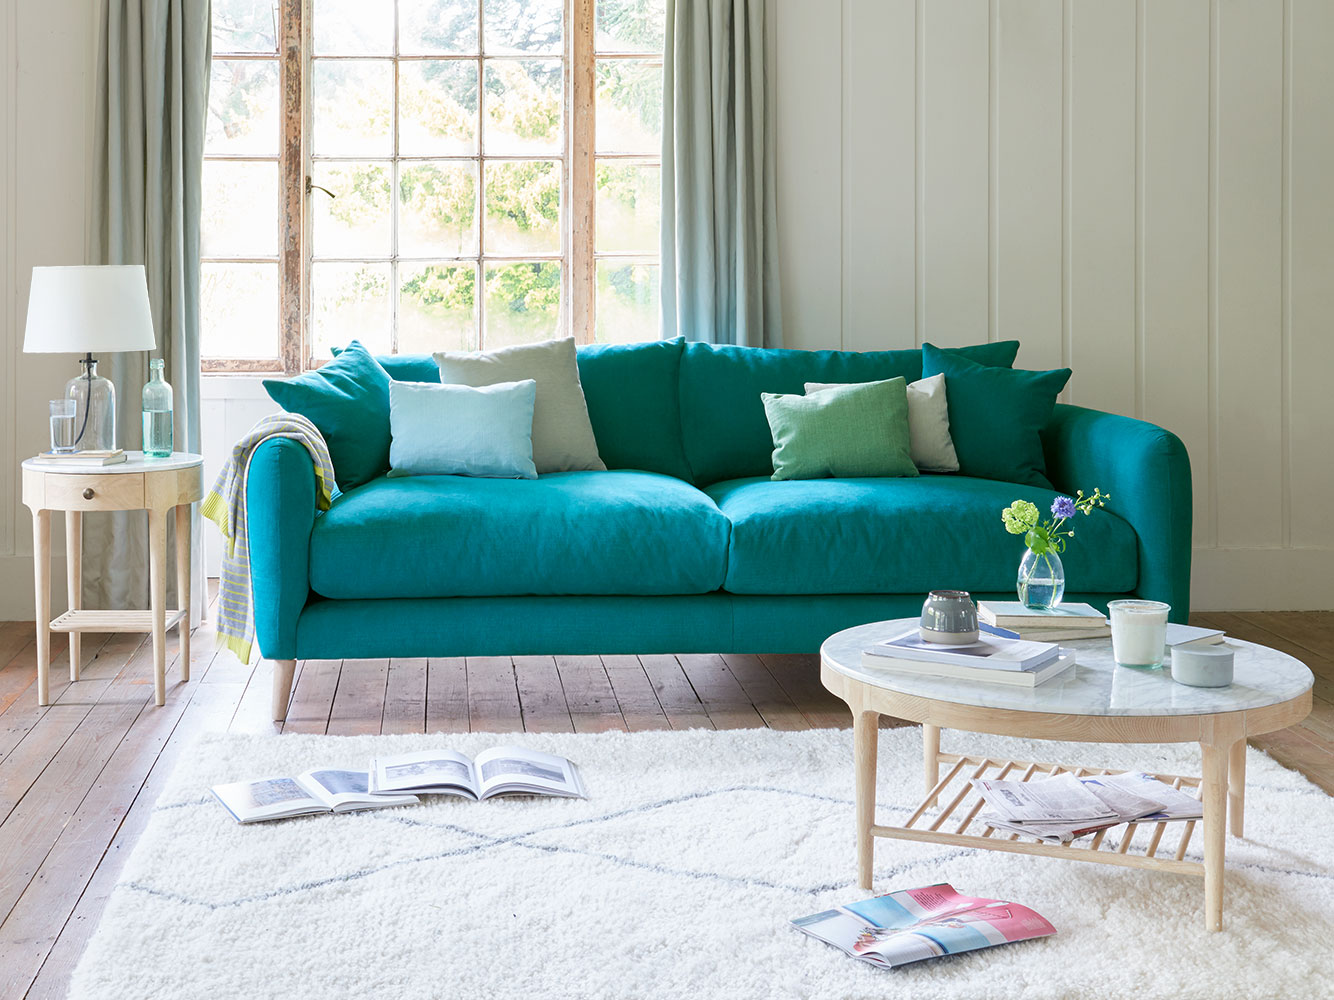 Small Squishmeister Sofa In Thatch House Fabric